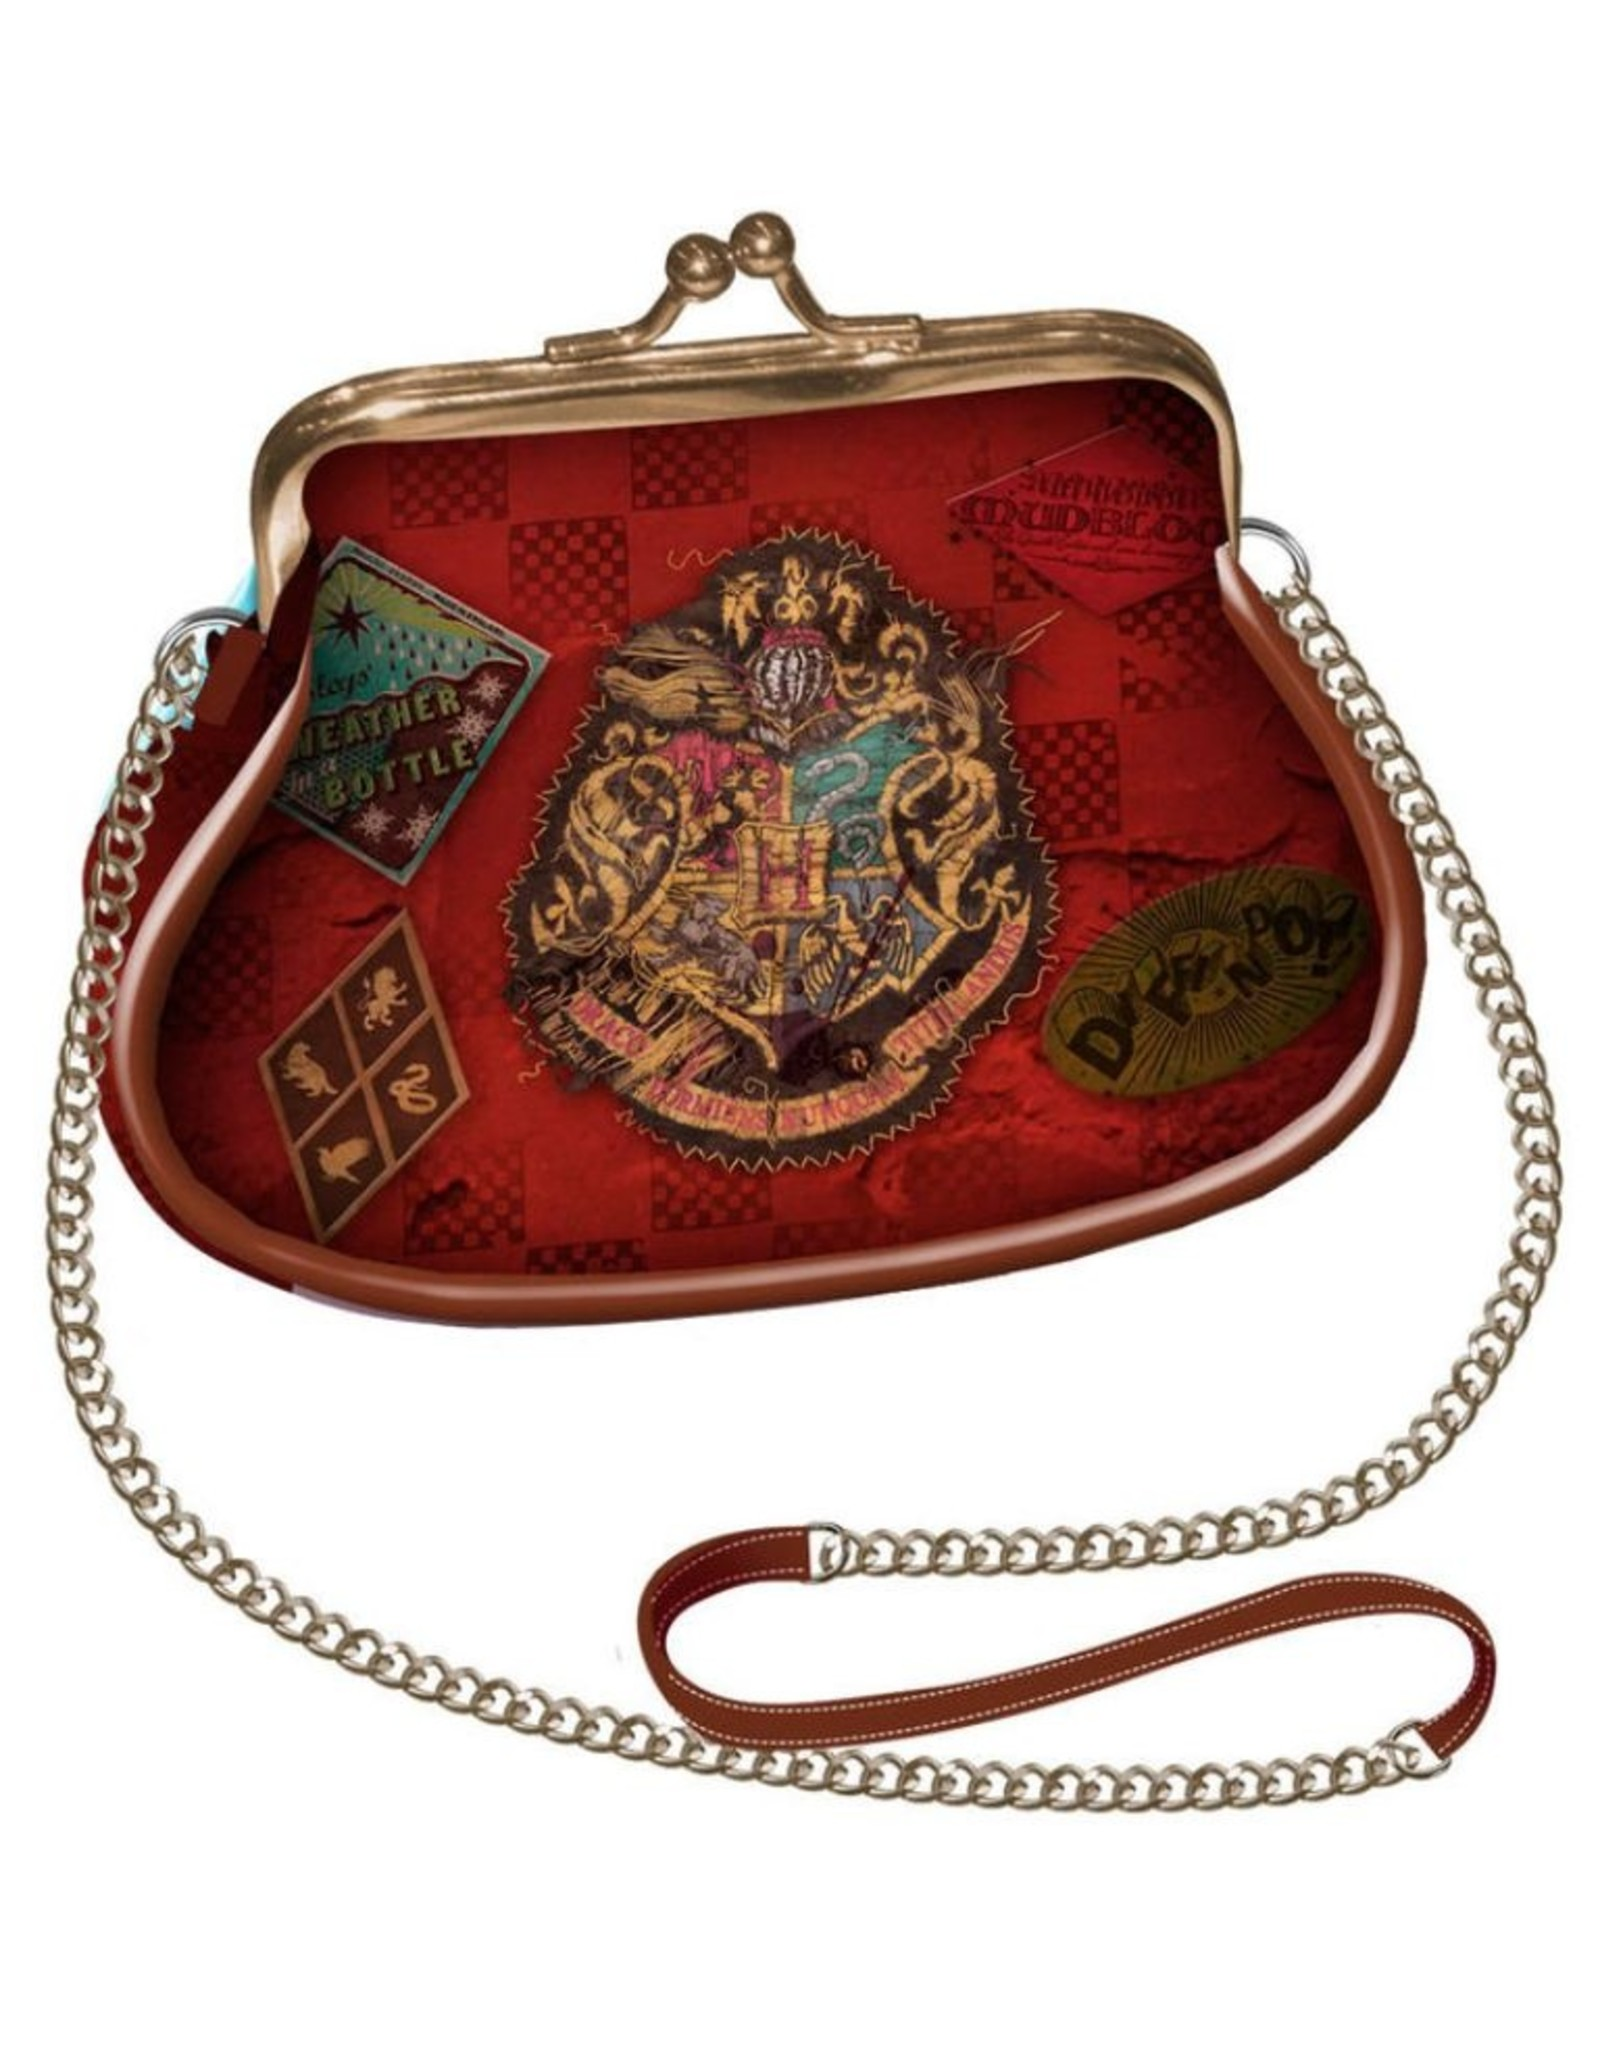 Harry Potter Harry Potter bags - Harry Potter Hogwarts Express bag with clip closure